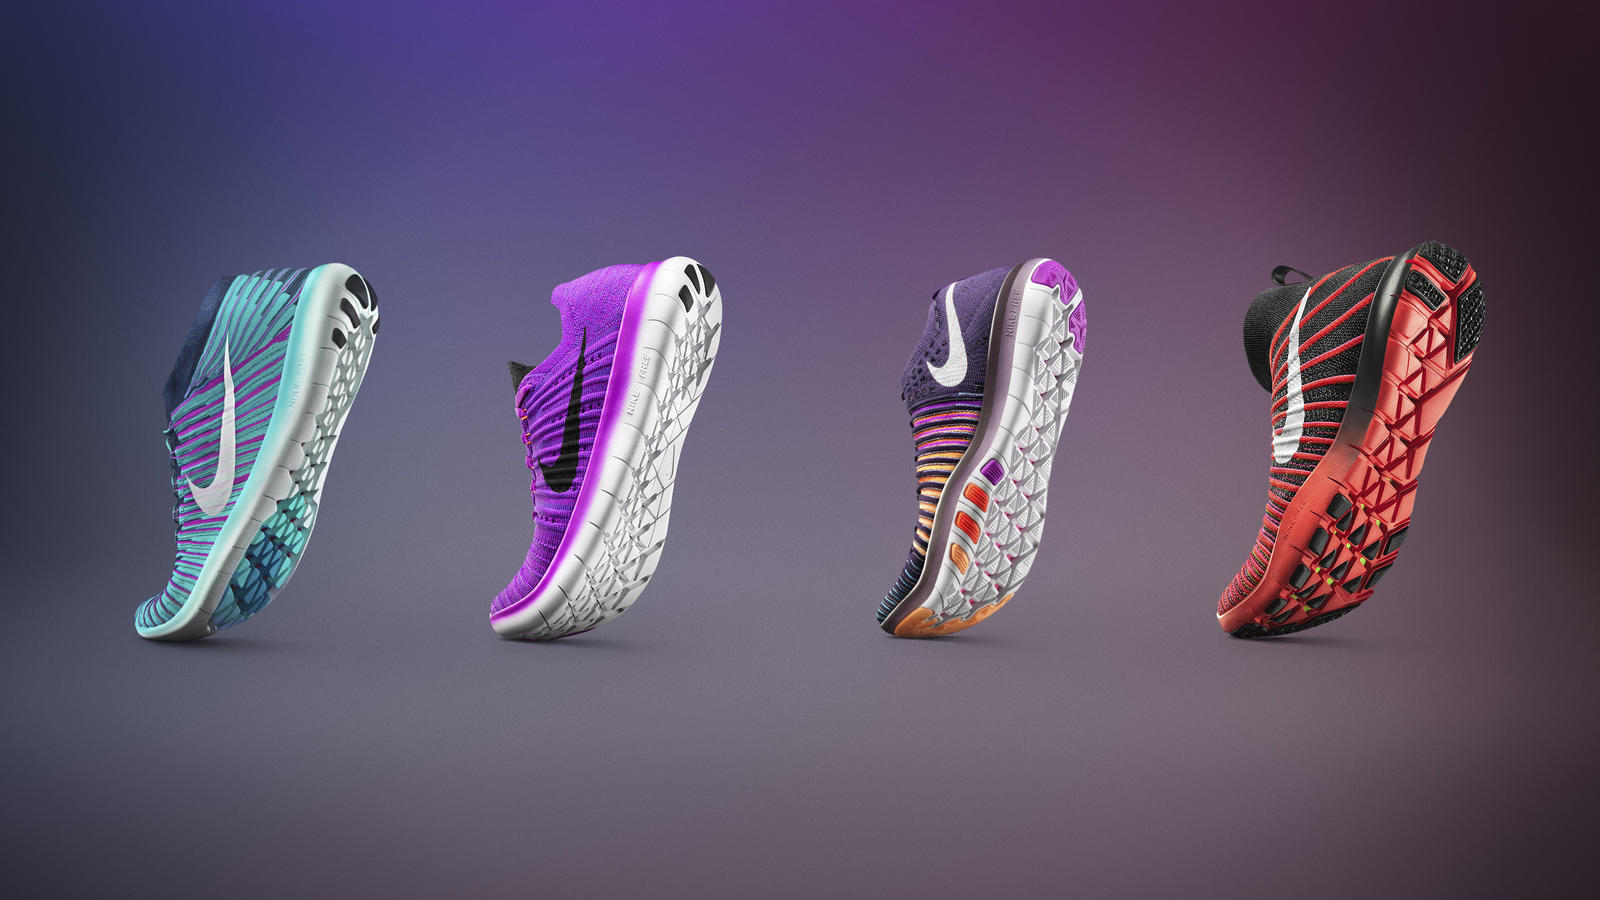 Nike Free Auxetic Midsole Technology for Running and Training